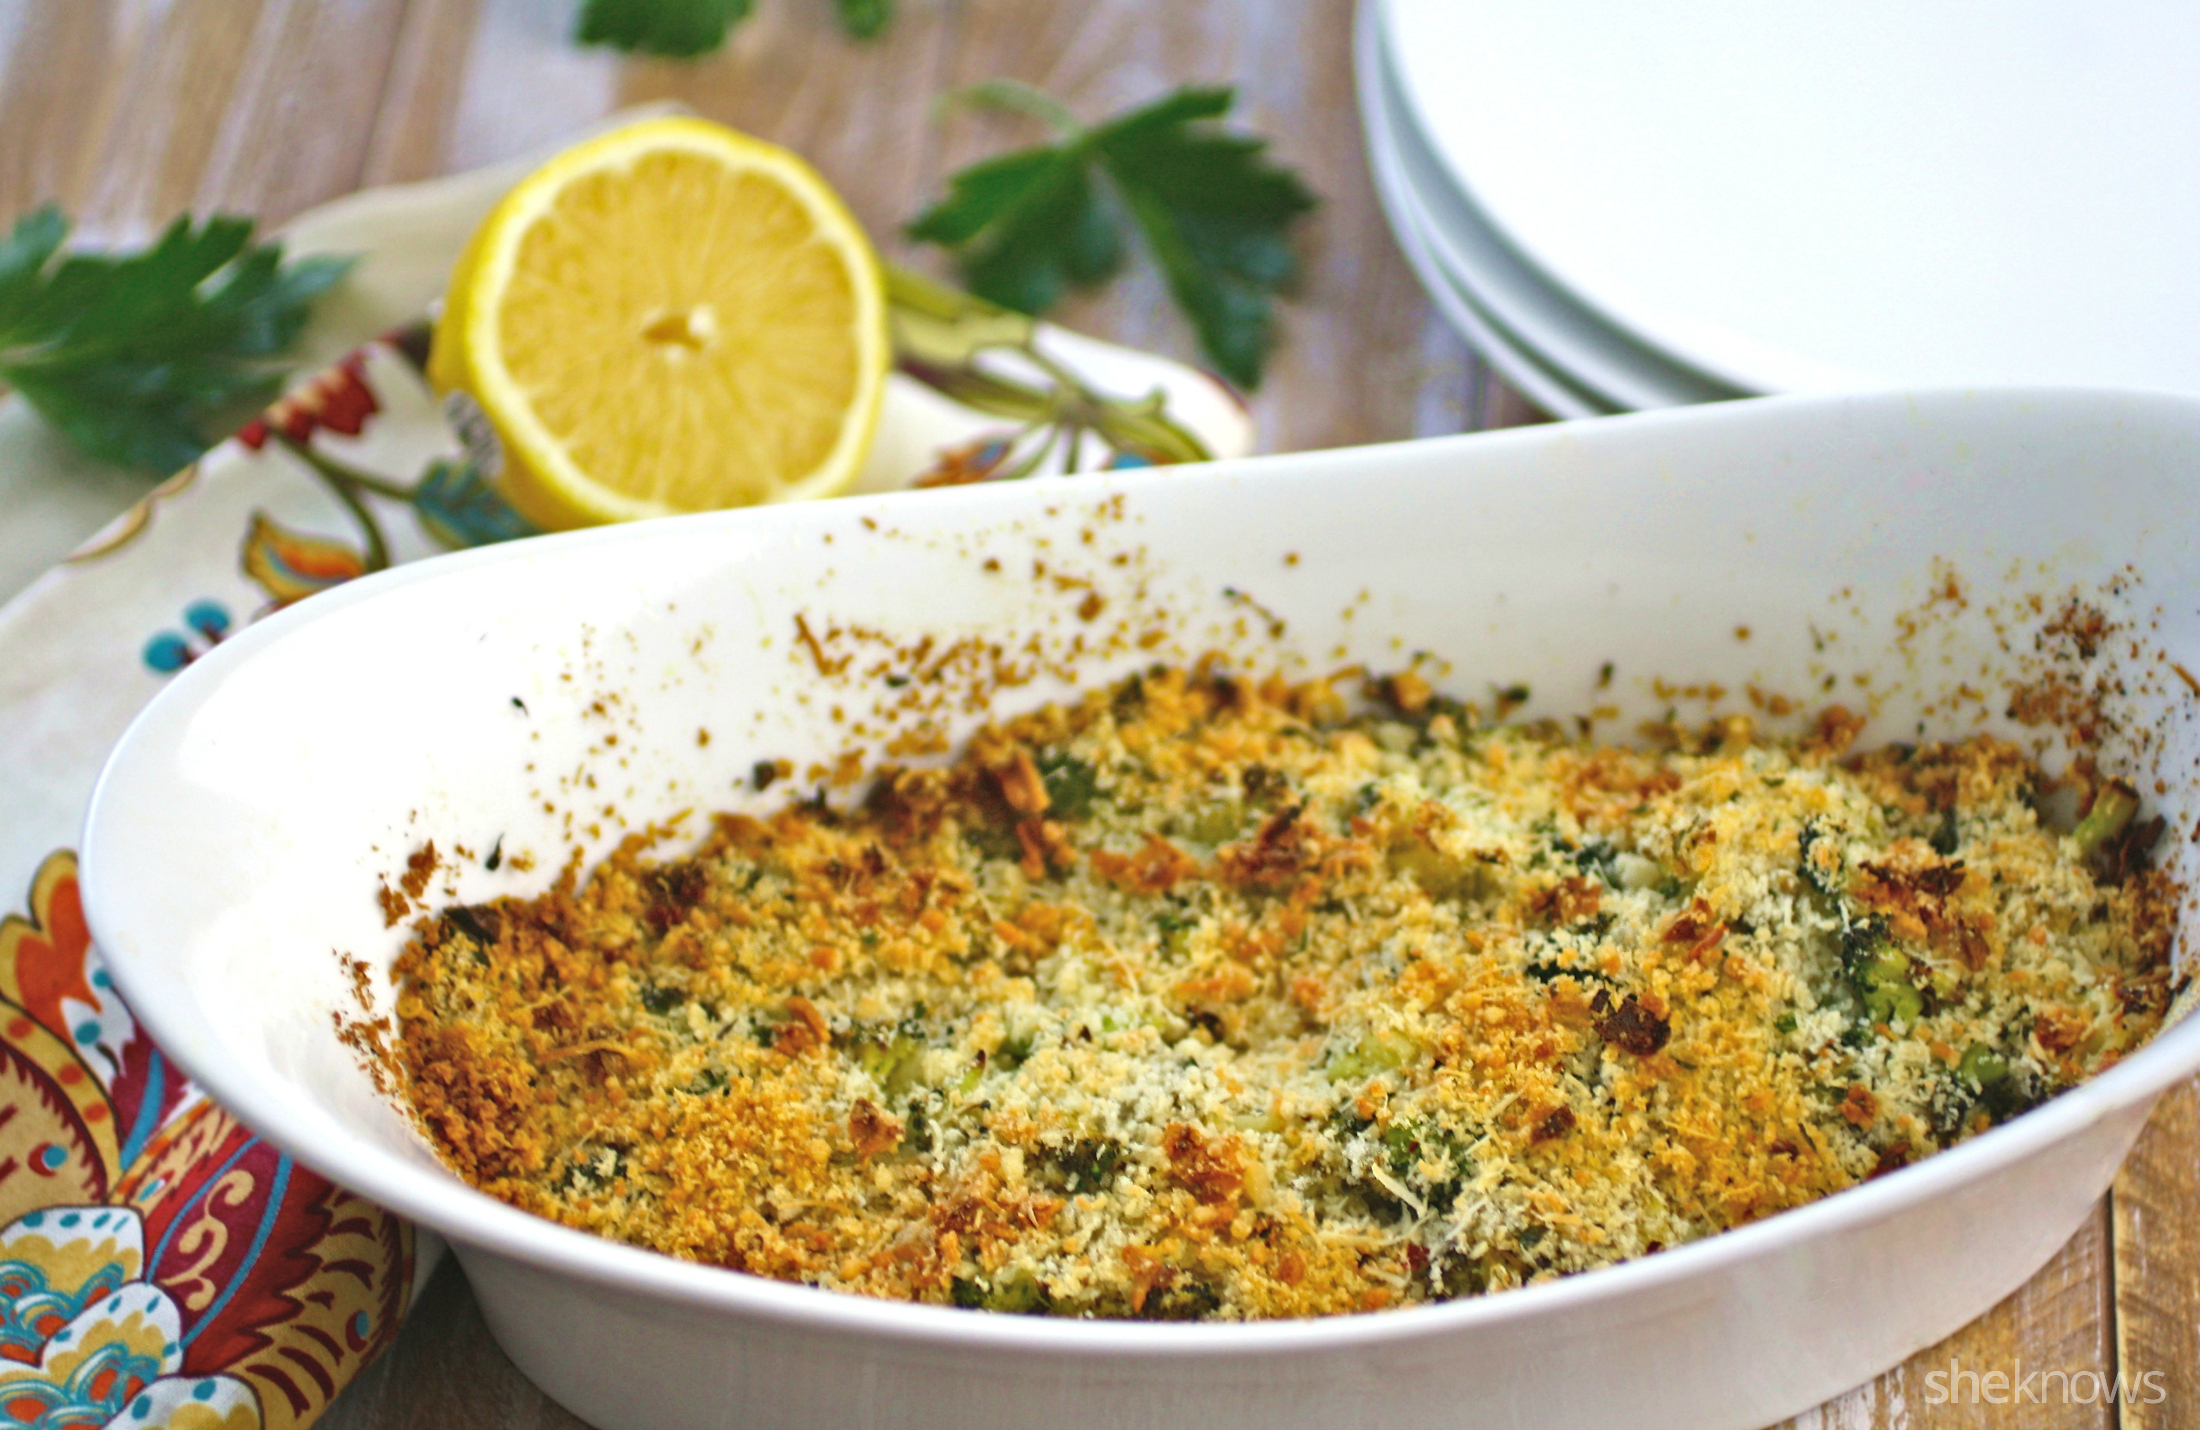 This dish for shrimp scampi bake with lemon-chile panko is baked for a healthier delivery